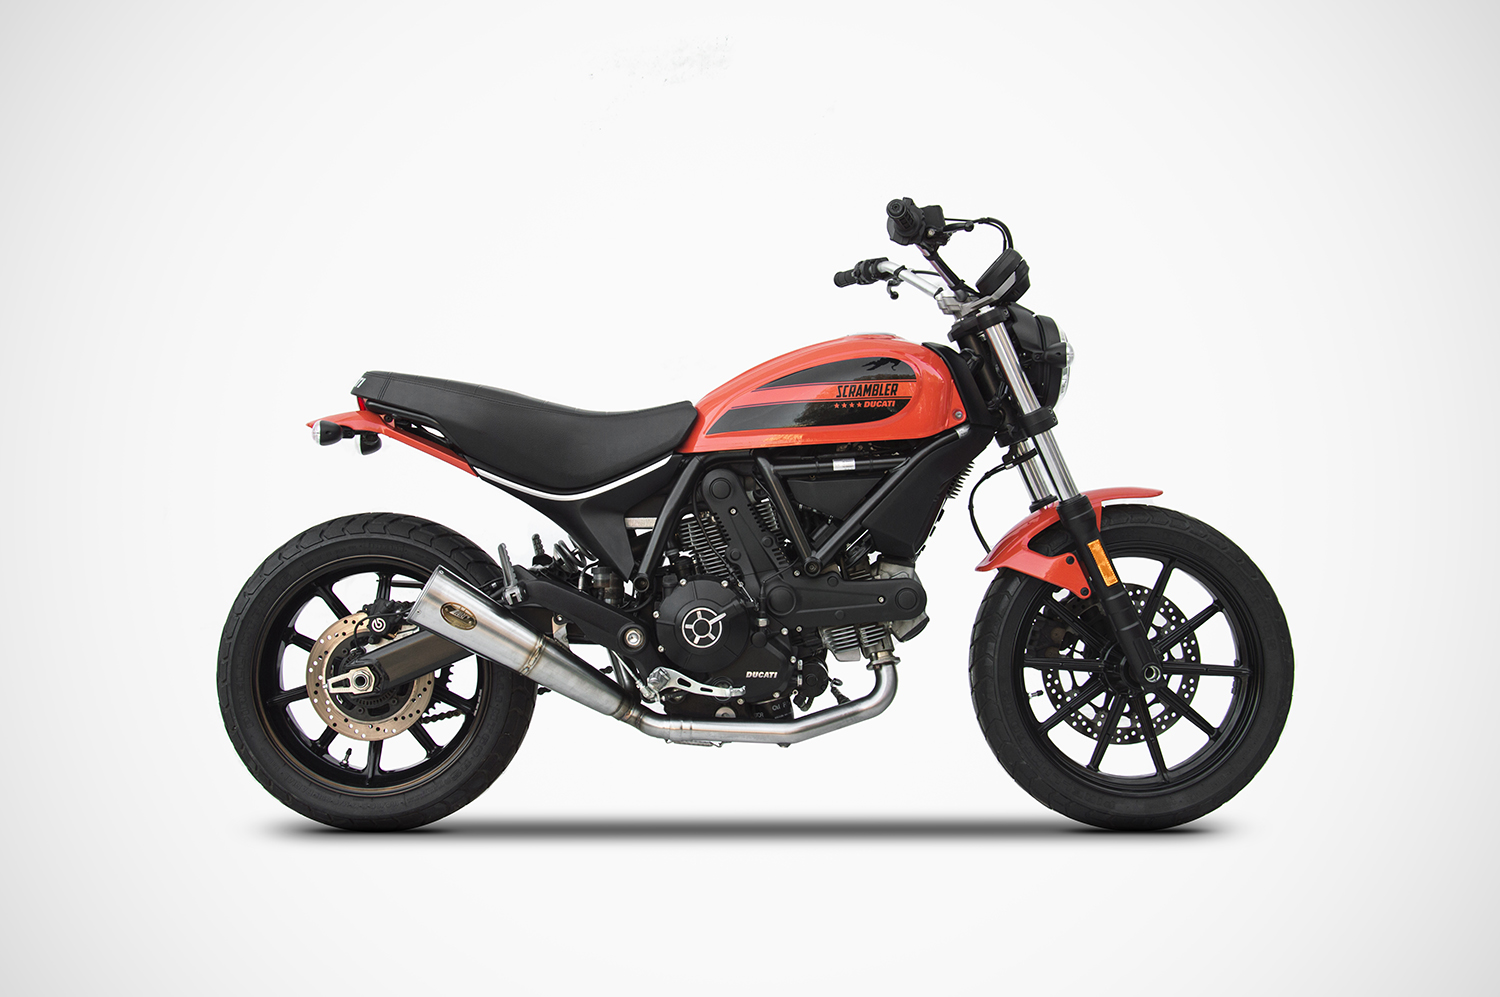 ducati scrambler 400 sixty2 online shop zard auspuff. Black Bedroom Furniture Sets. Home Design Ideas